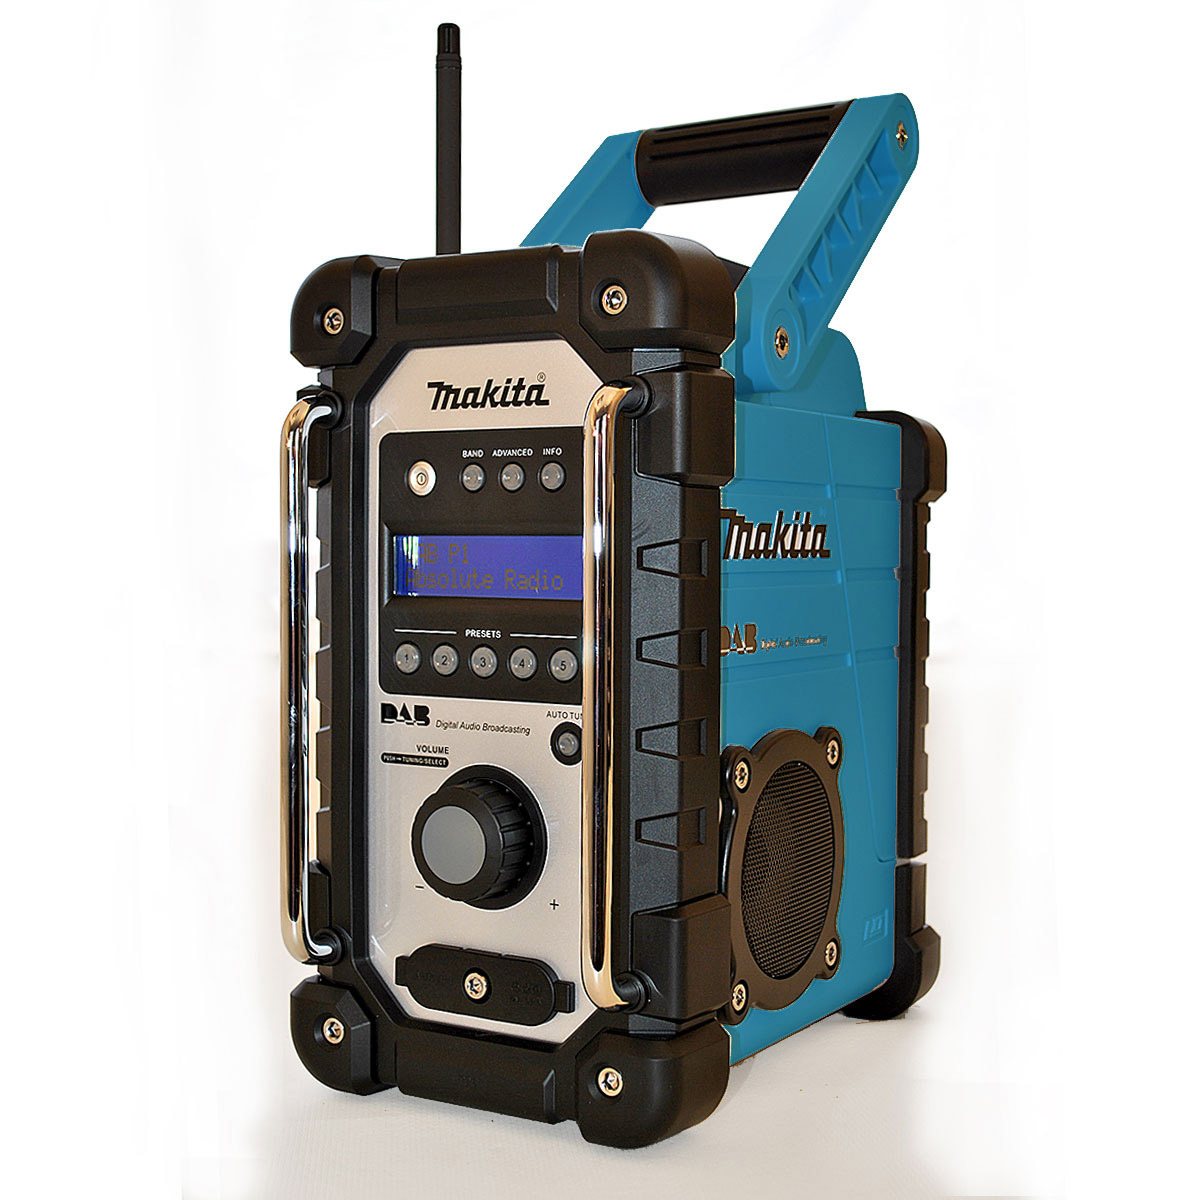 makita bmr104 job site radio with dab product. Black Bedroom Furniture Sets. Home Design Ideas